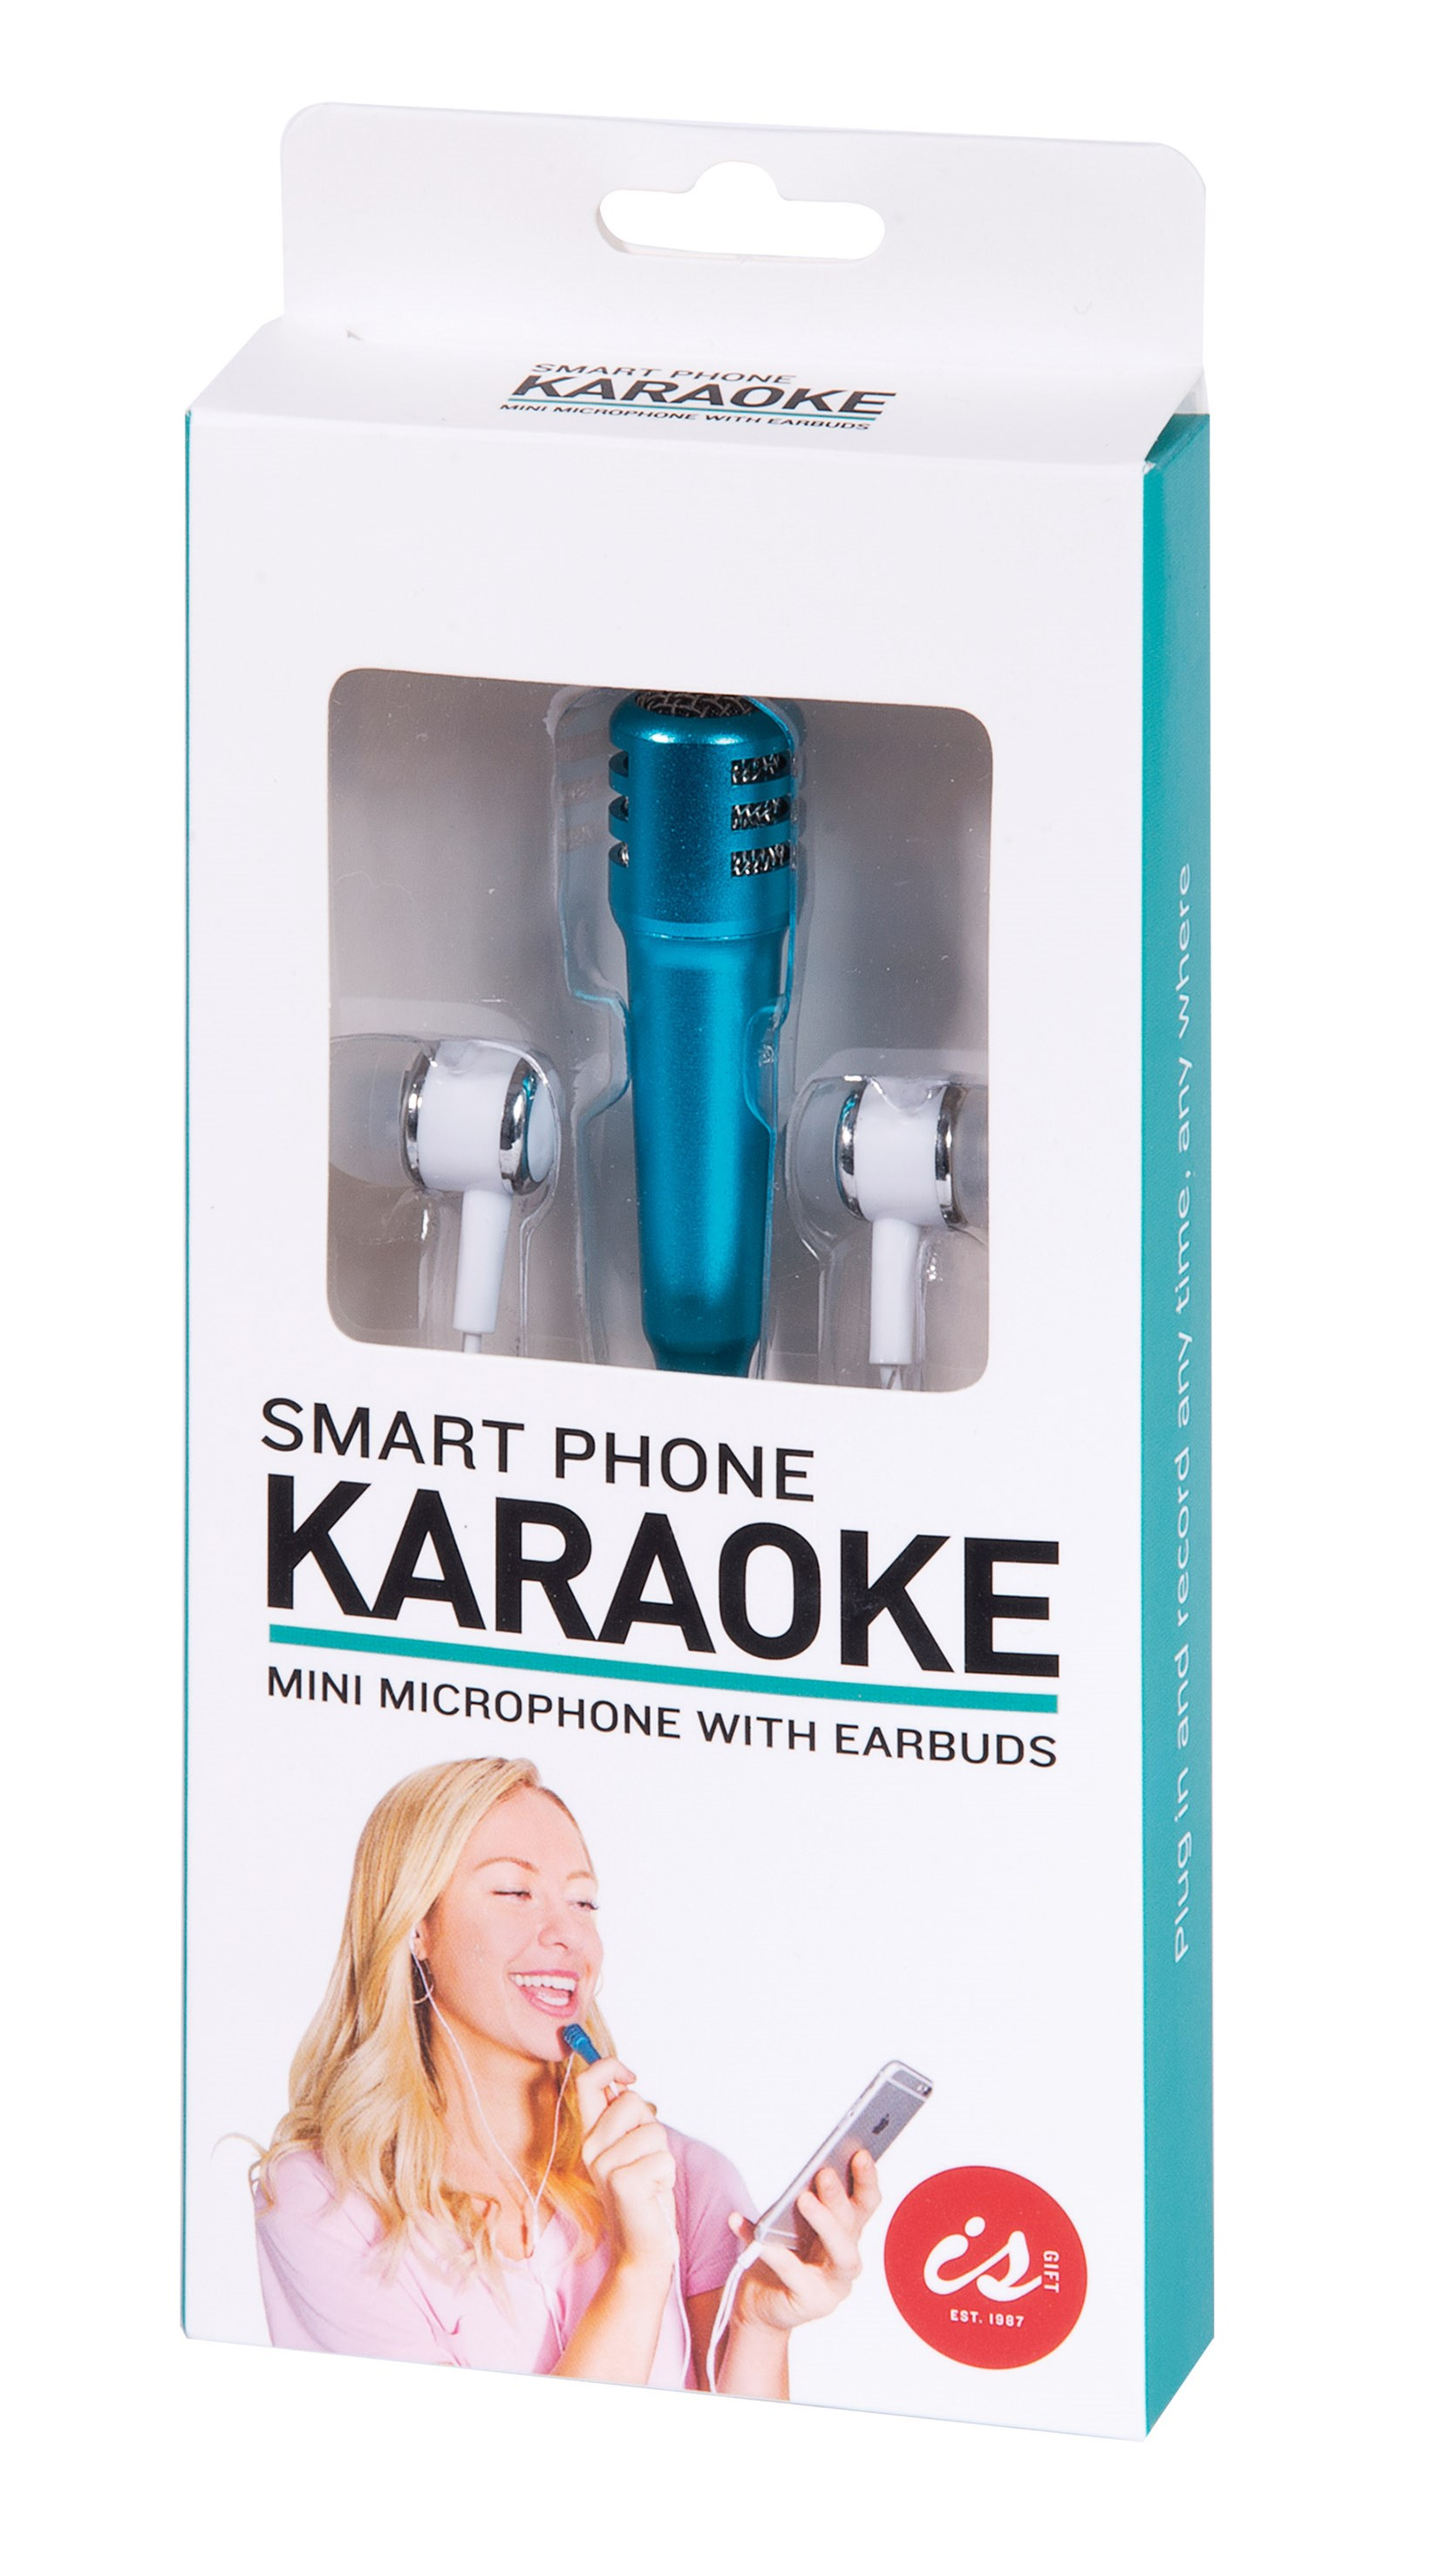 Smart Phone Karaoke Microphone & Earbuds